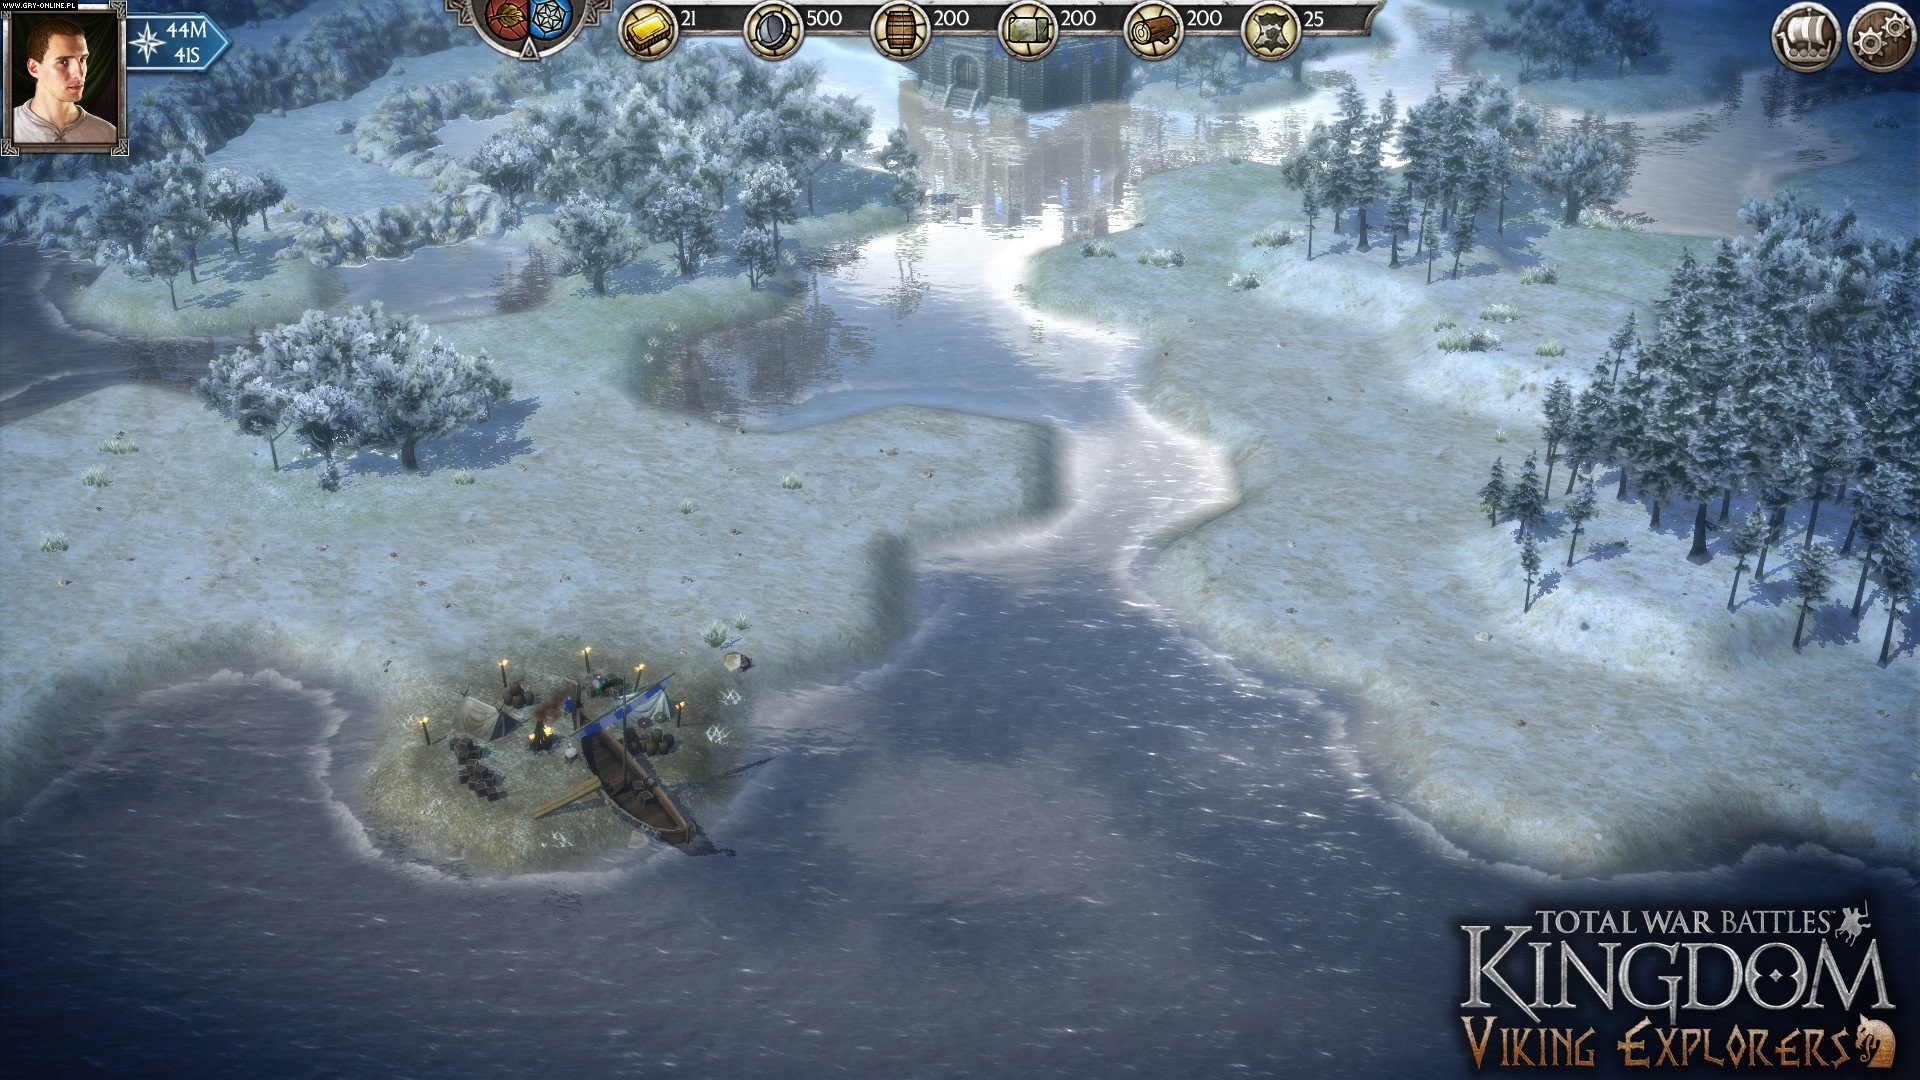 Total War Battles: Kingdom PC, iOS, AND Gry Screen 4/36, Creative Assembly, SEGA